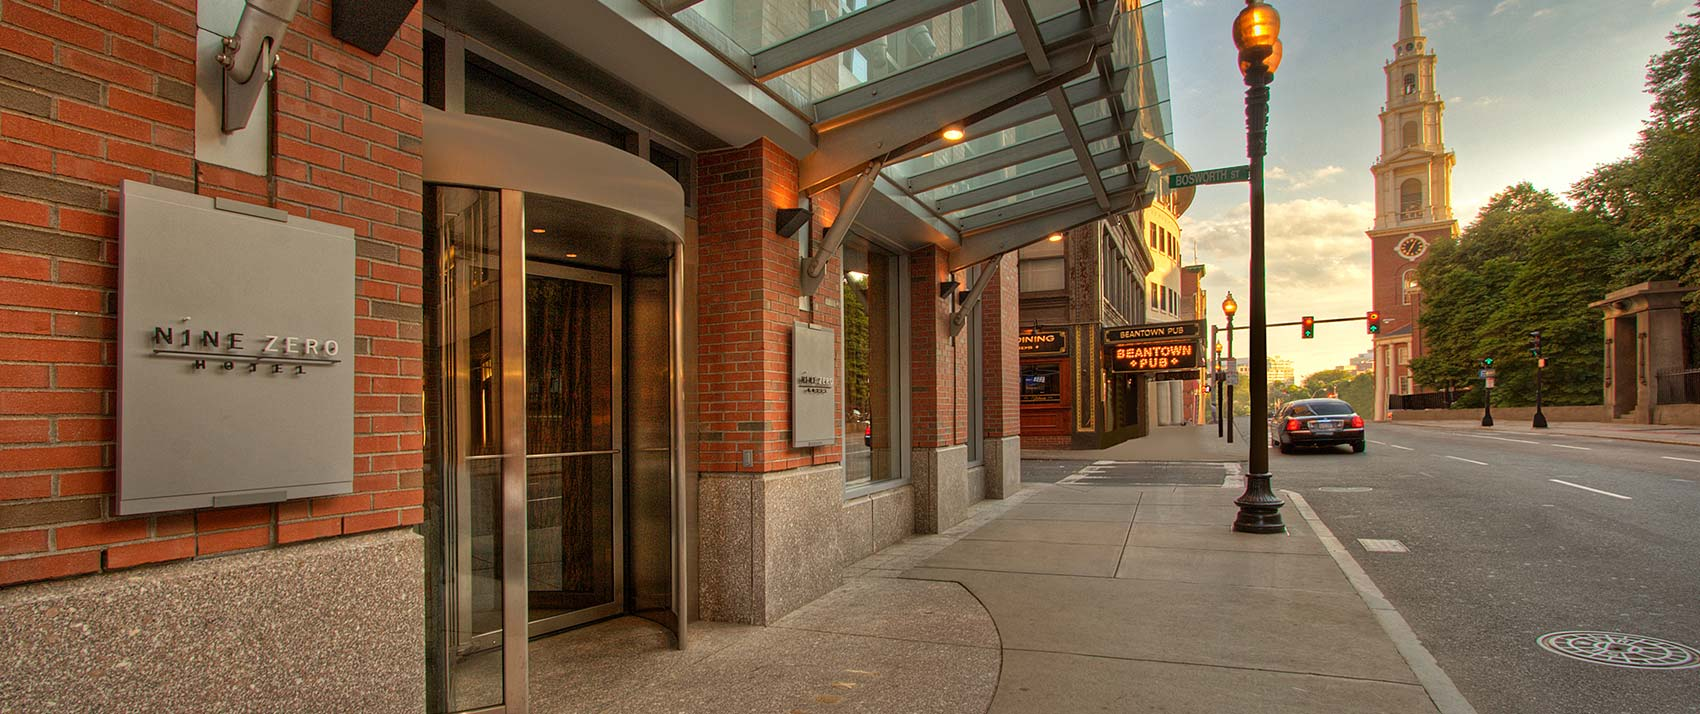 Kimpton Nine Zero Hotel entrance